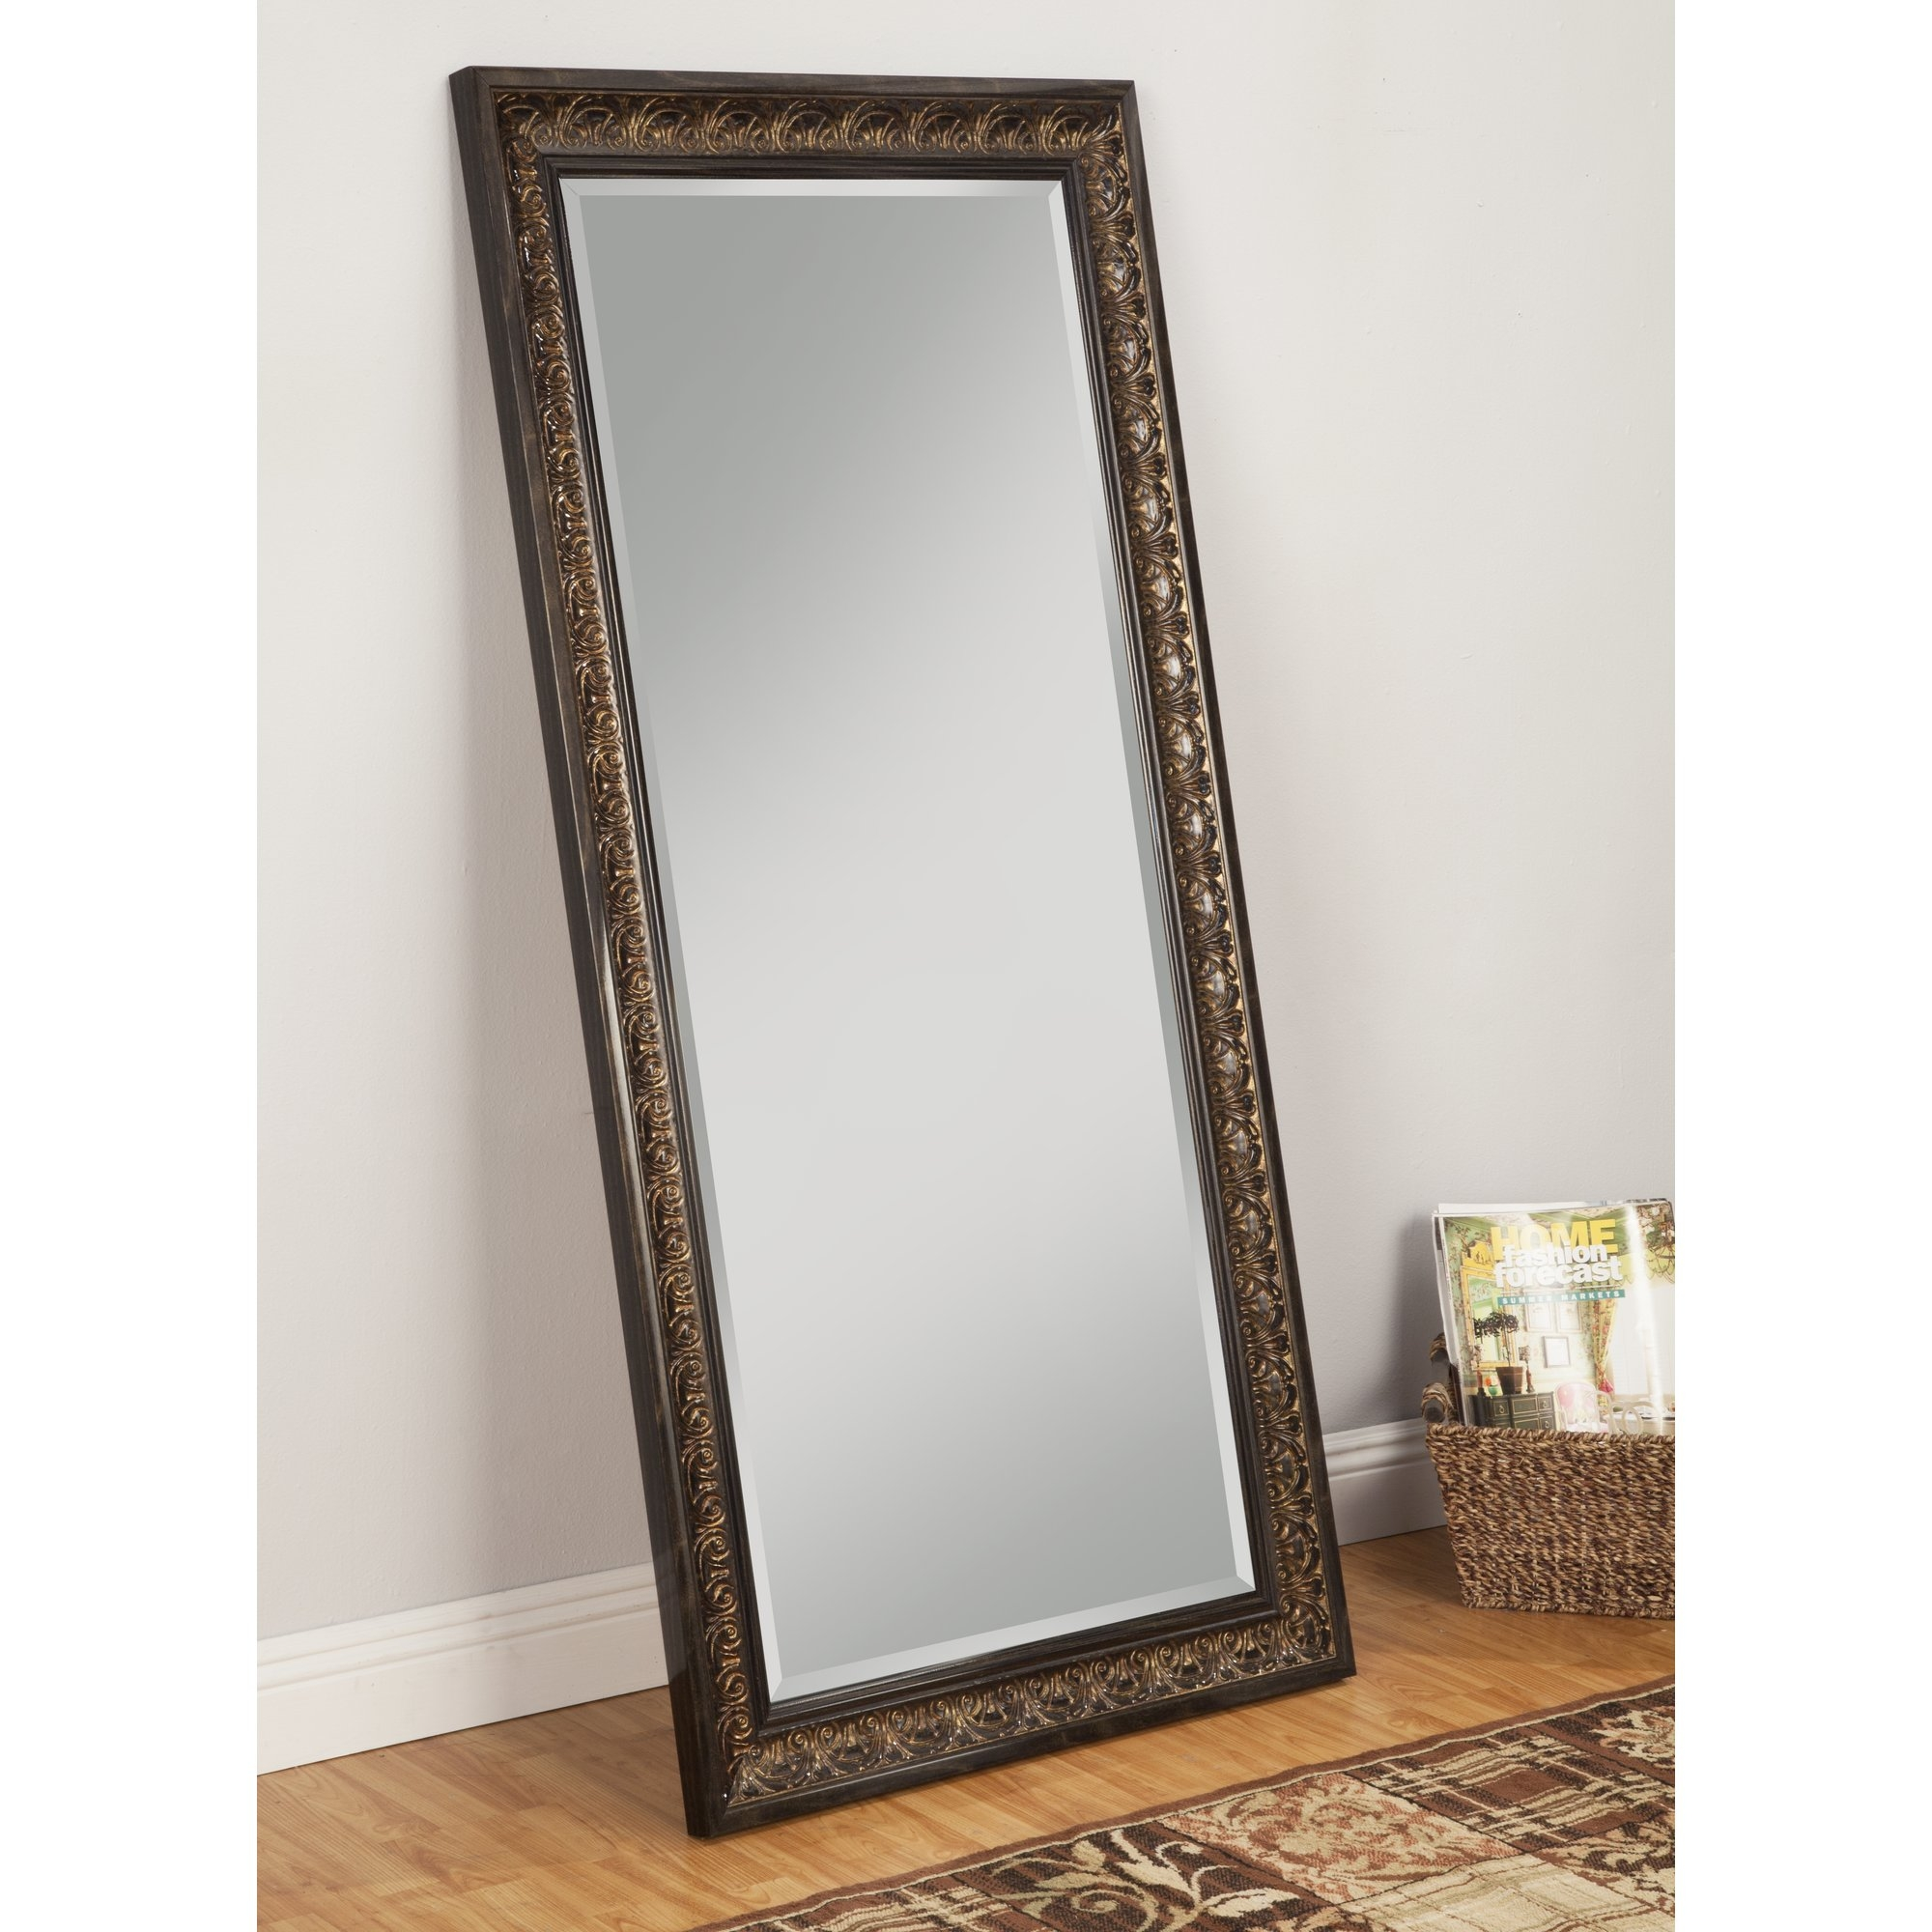 Shop 10165 Wall Mirrors Wayfair Intended For Long Decorative Mirror (Image 14 of 15)